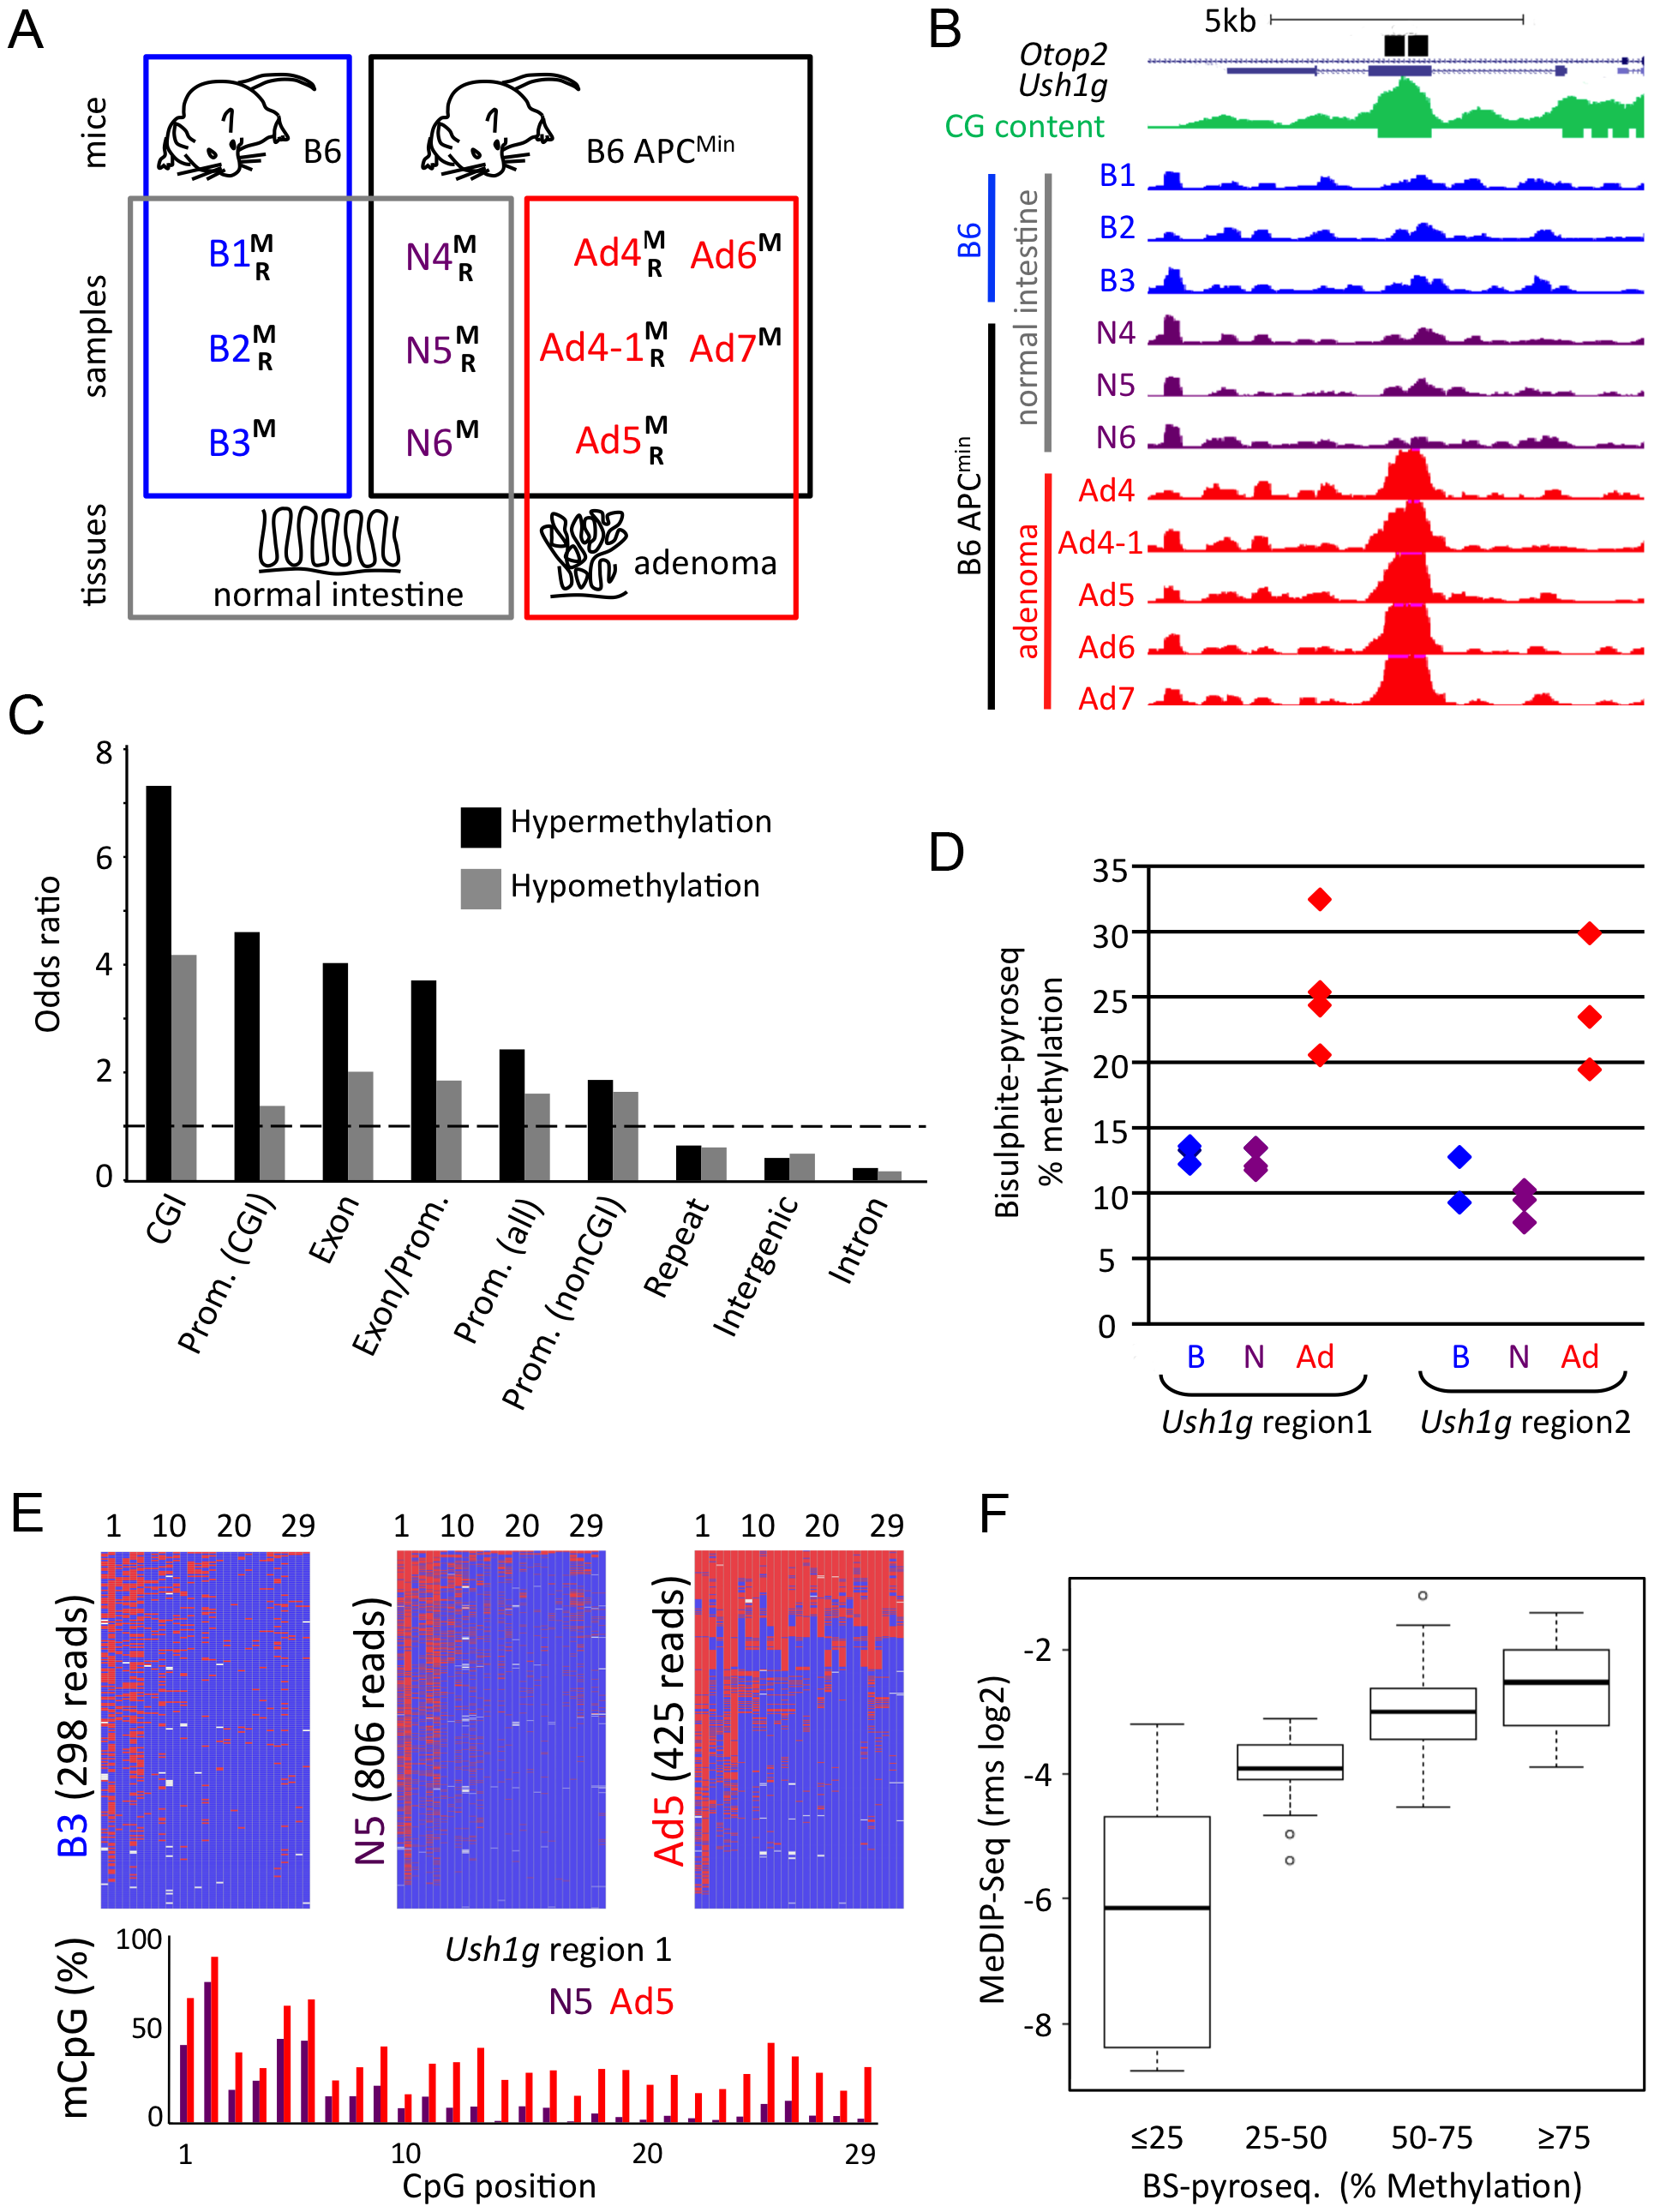 Generation and validation of genome-wide CpG methylation maps of APC<sup>Min</sup> mouse normal and adenoma tissues.